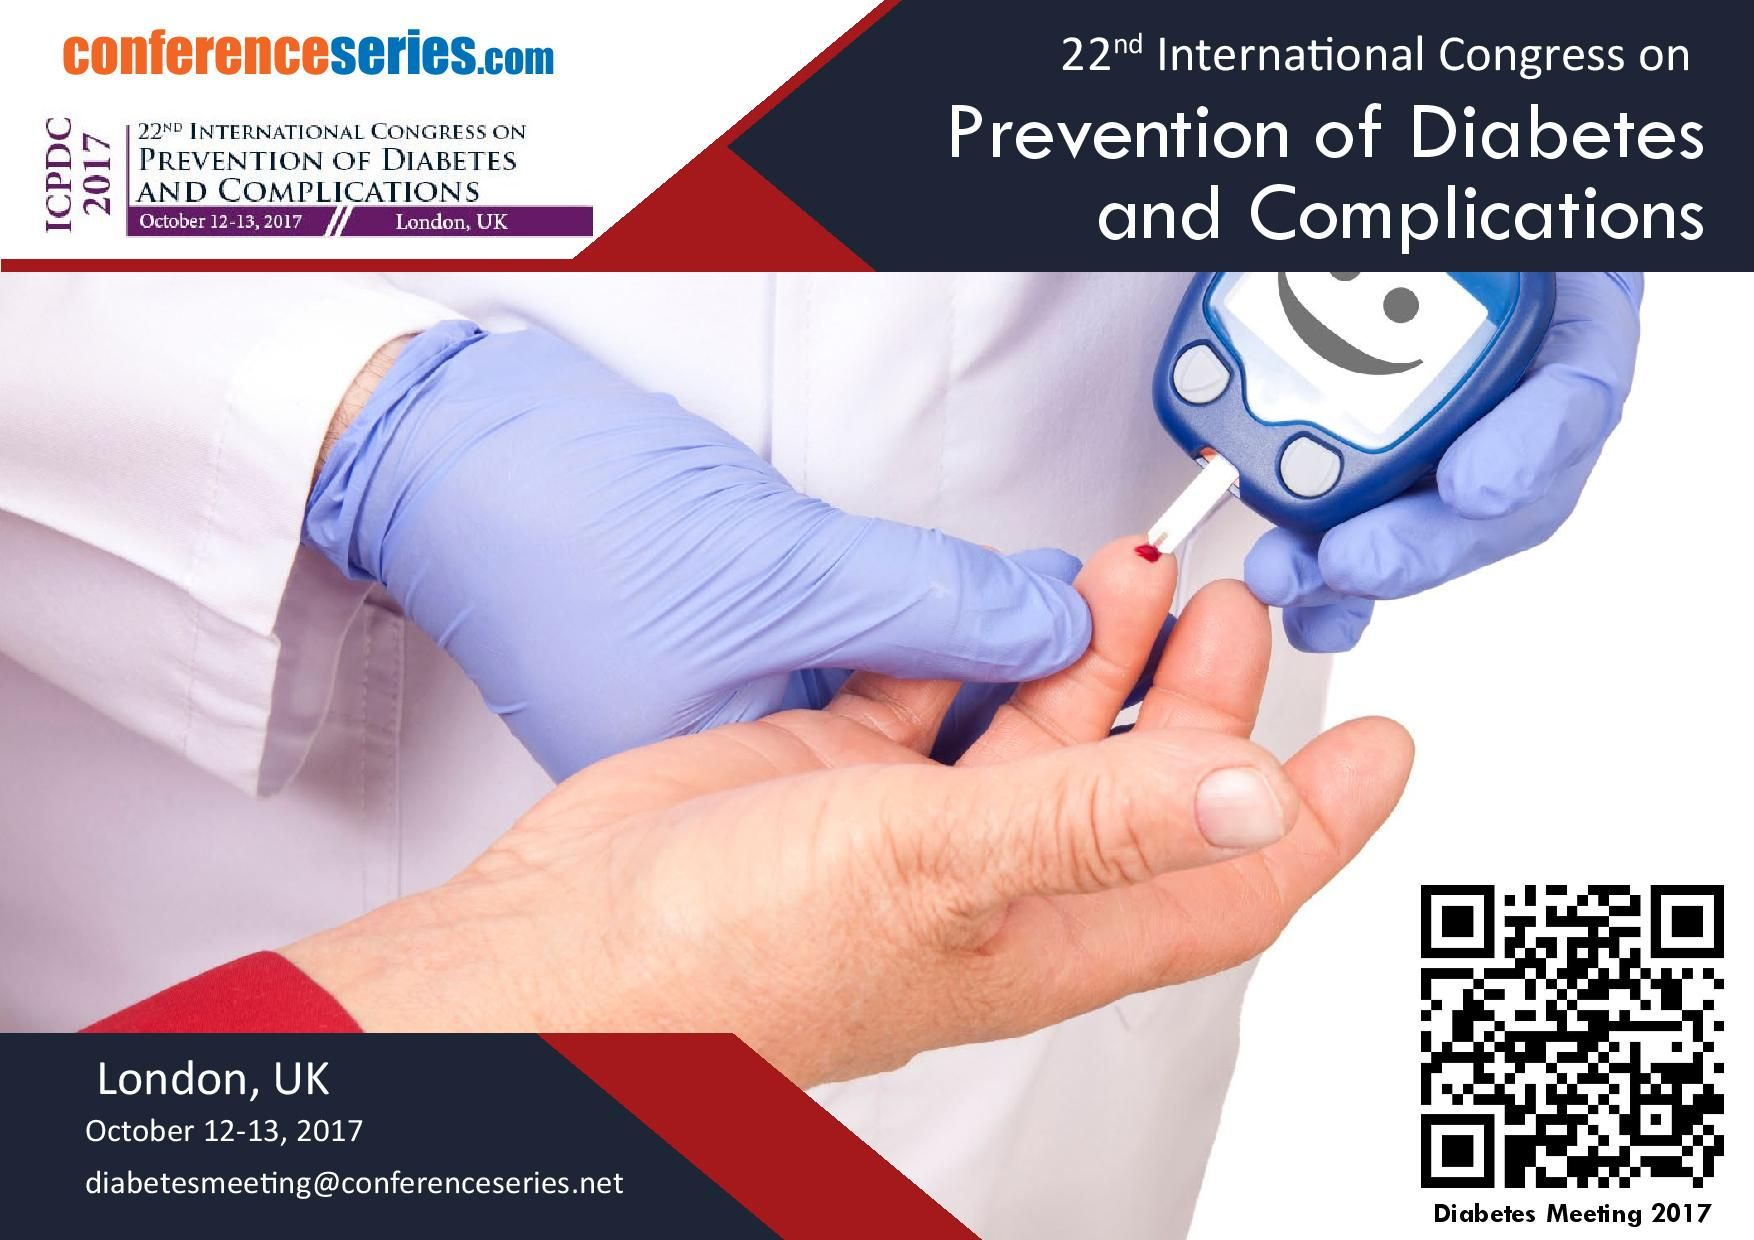 22nd International Conference on Prevention of Diabetes